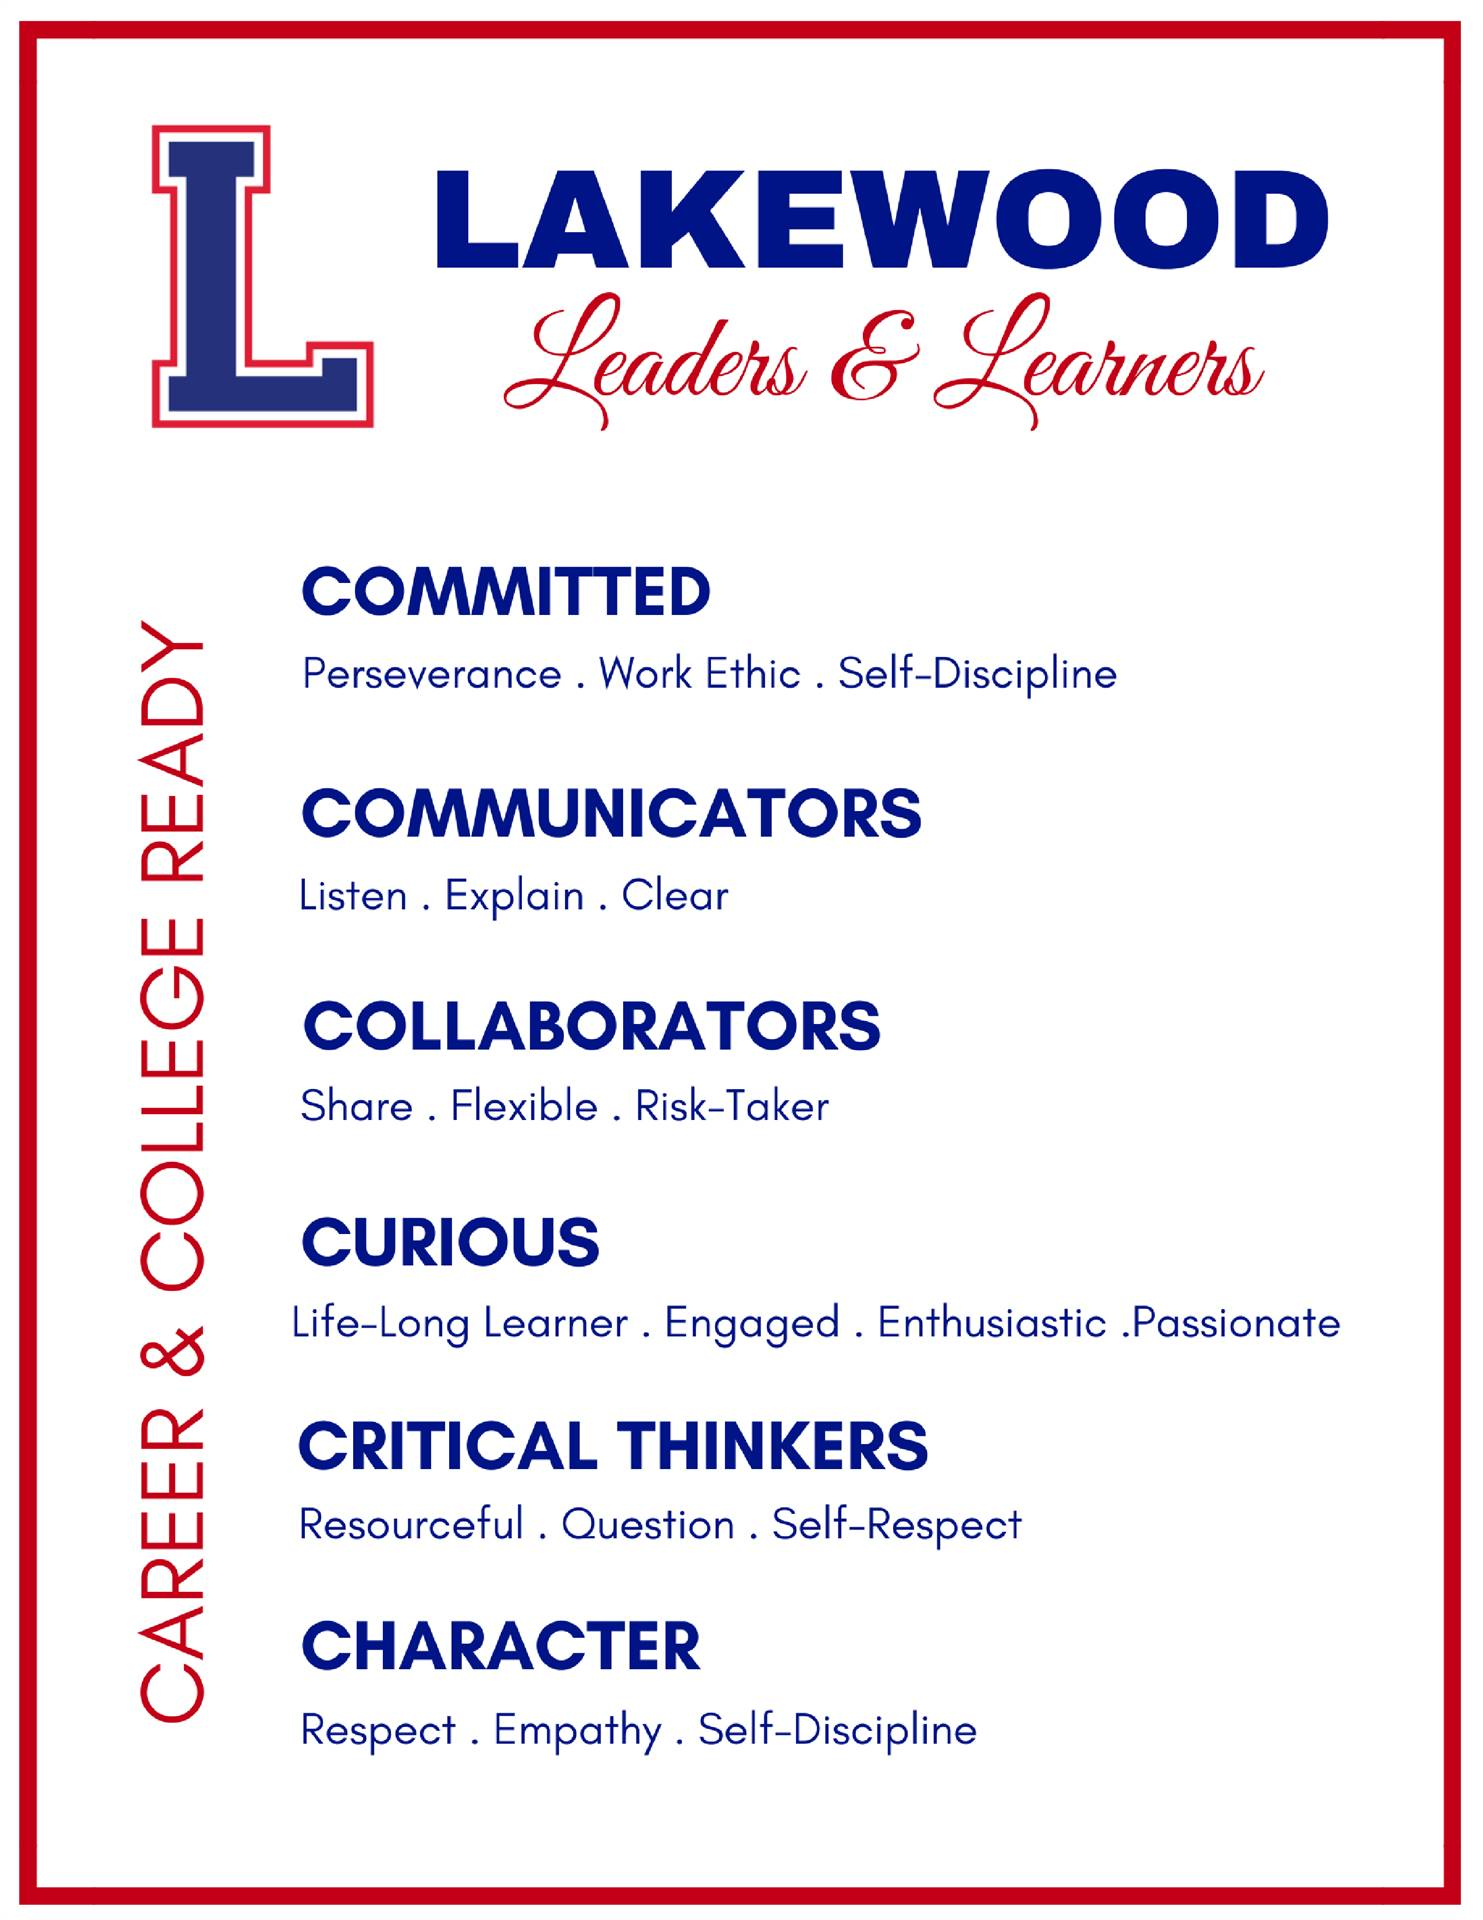 leaders & learners characteristics: committed, communicators, collaborators, curious, critical think